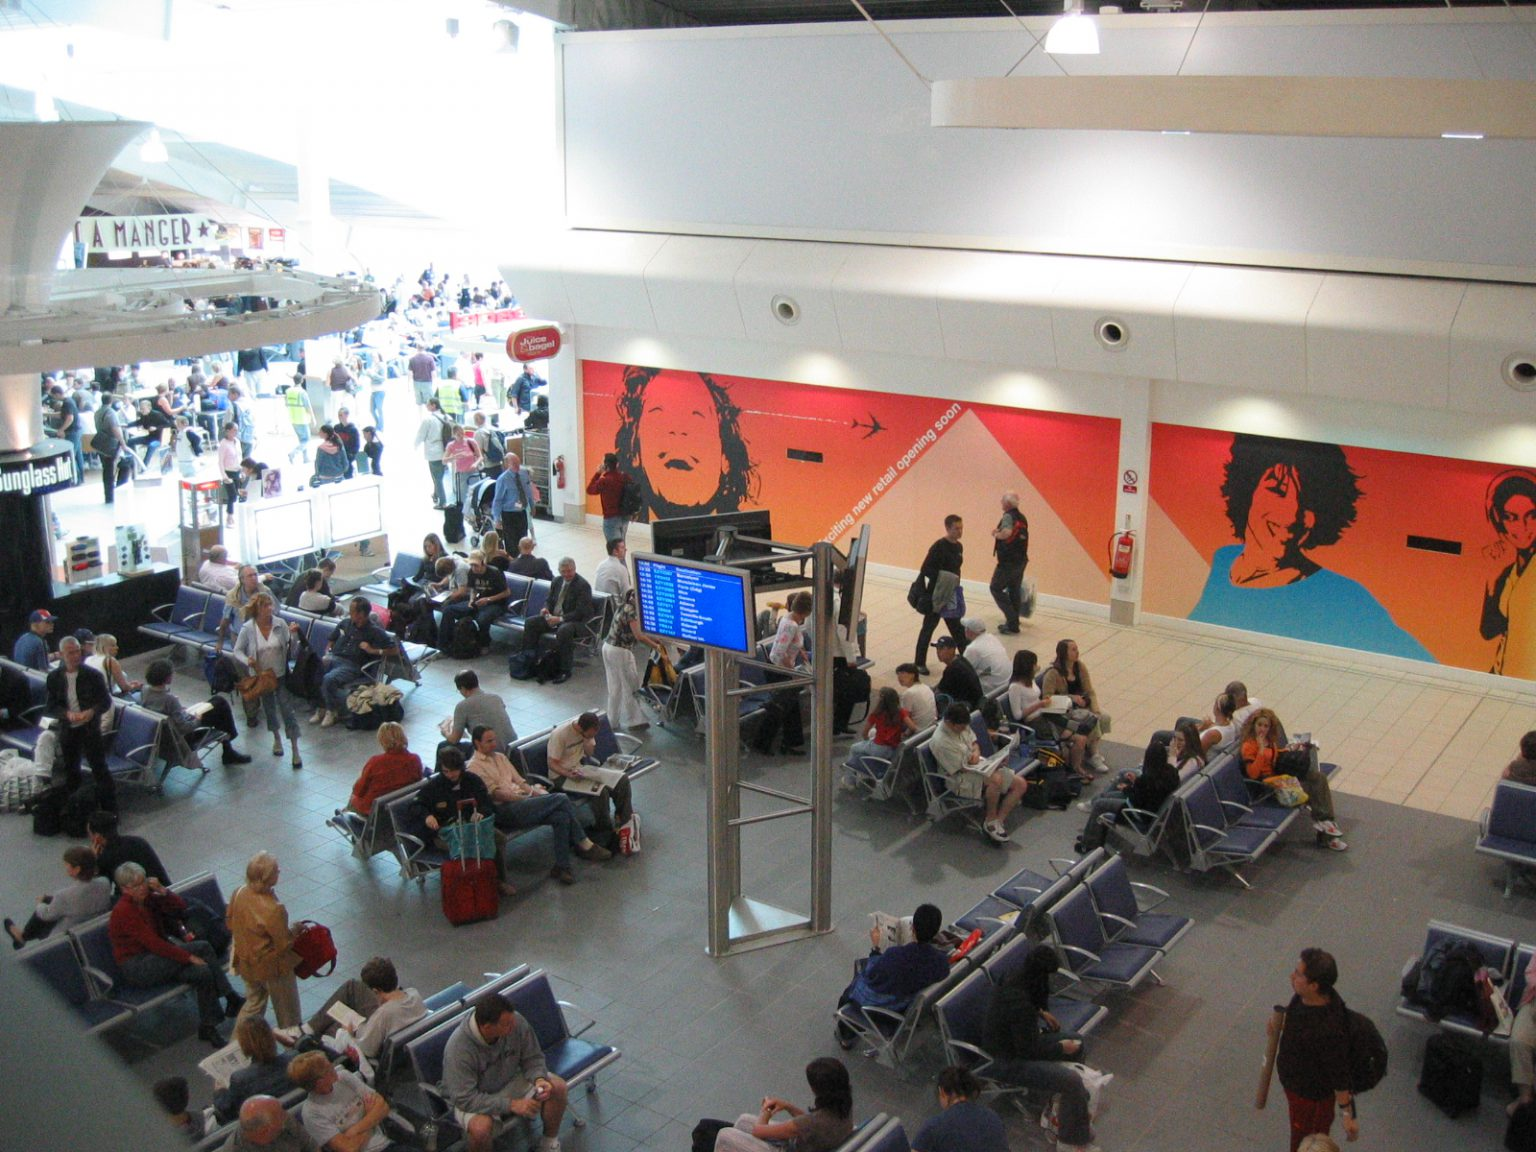 Flight information displays in waiting area